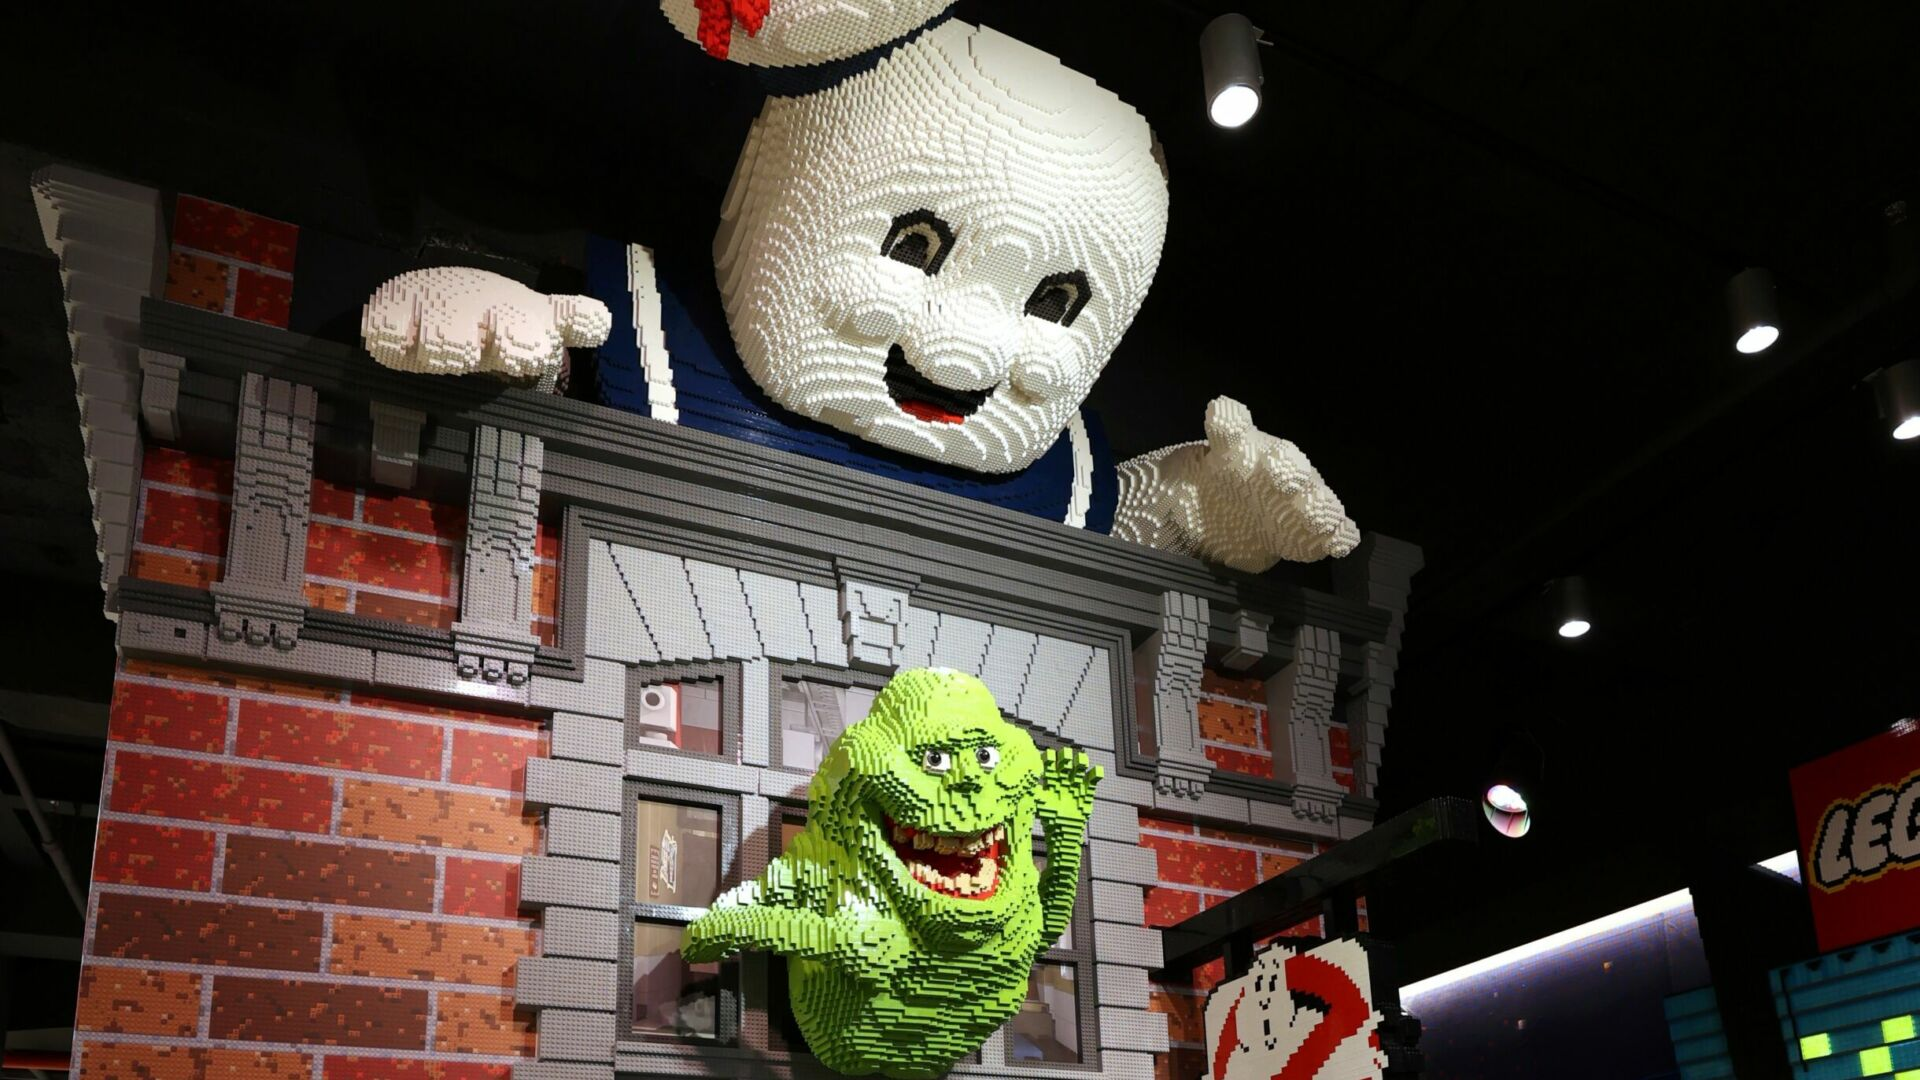 Slimer, the Stay-Puft Marshmallow and other familiar characters populate the elevator shaft and stairwell. (Photo by Cindy Ord/Getty Images)